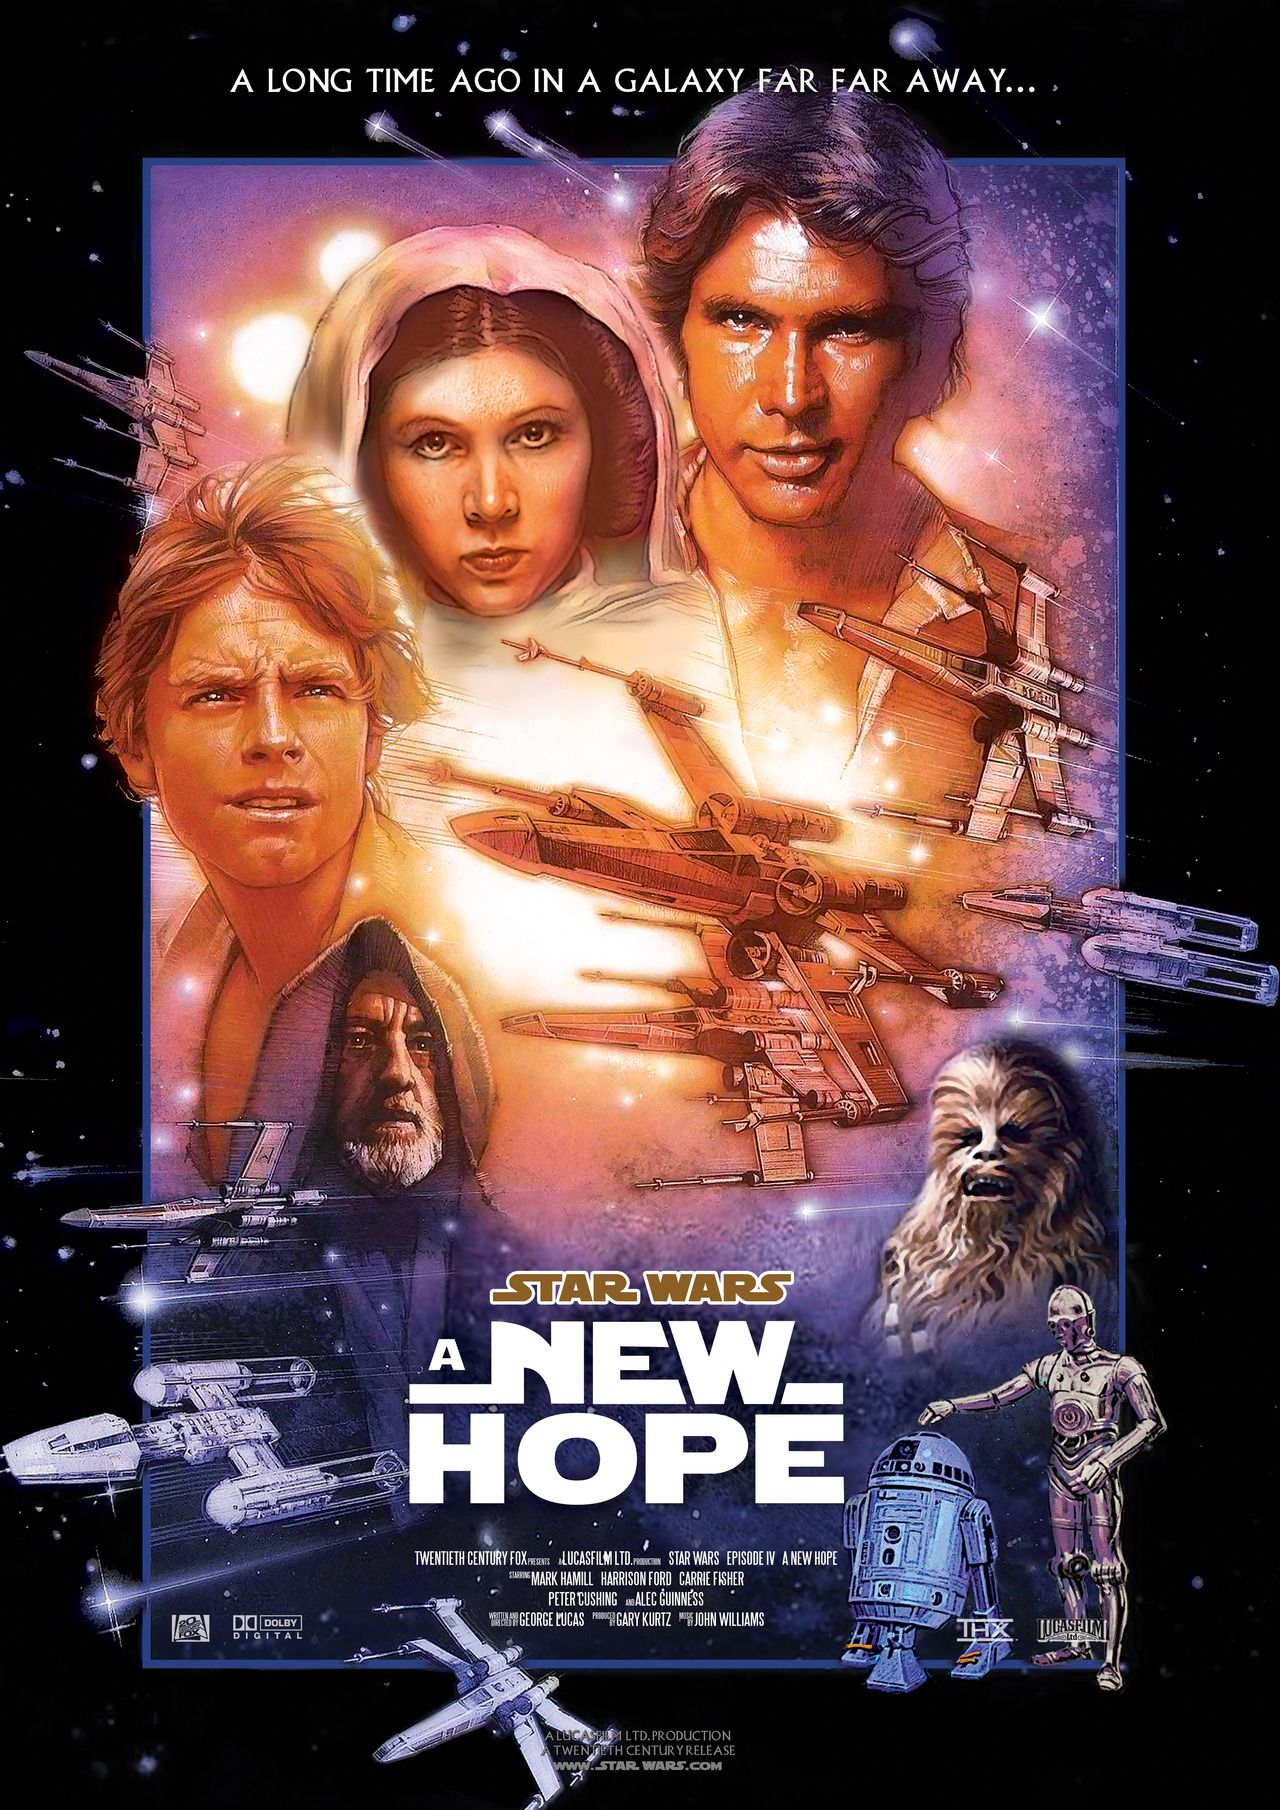 Star Wars Episode Iv A New Hope 1977 Star Wars Movies Posters Star Wars Episode 4 Star Wars Episode Iv